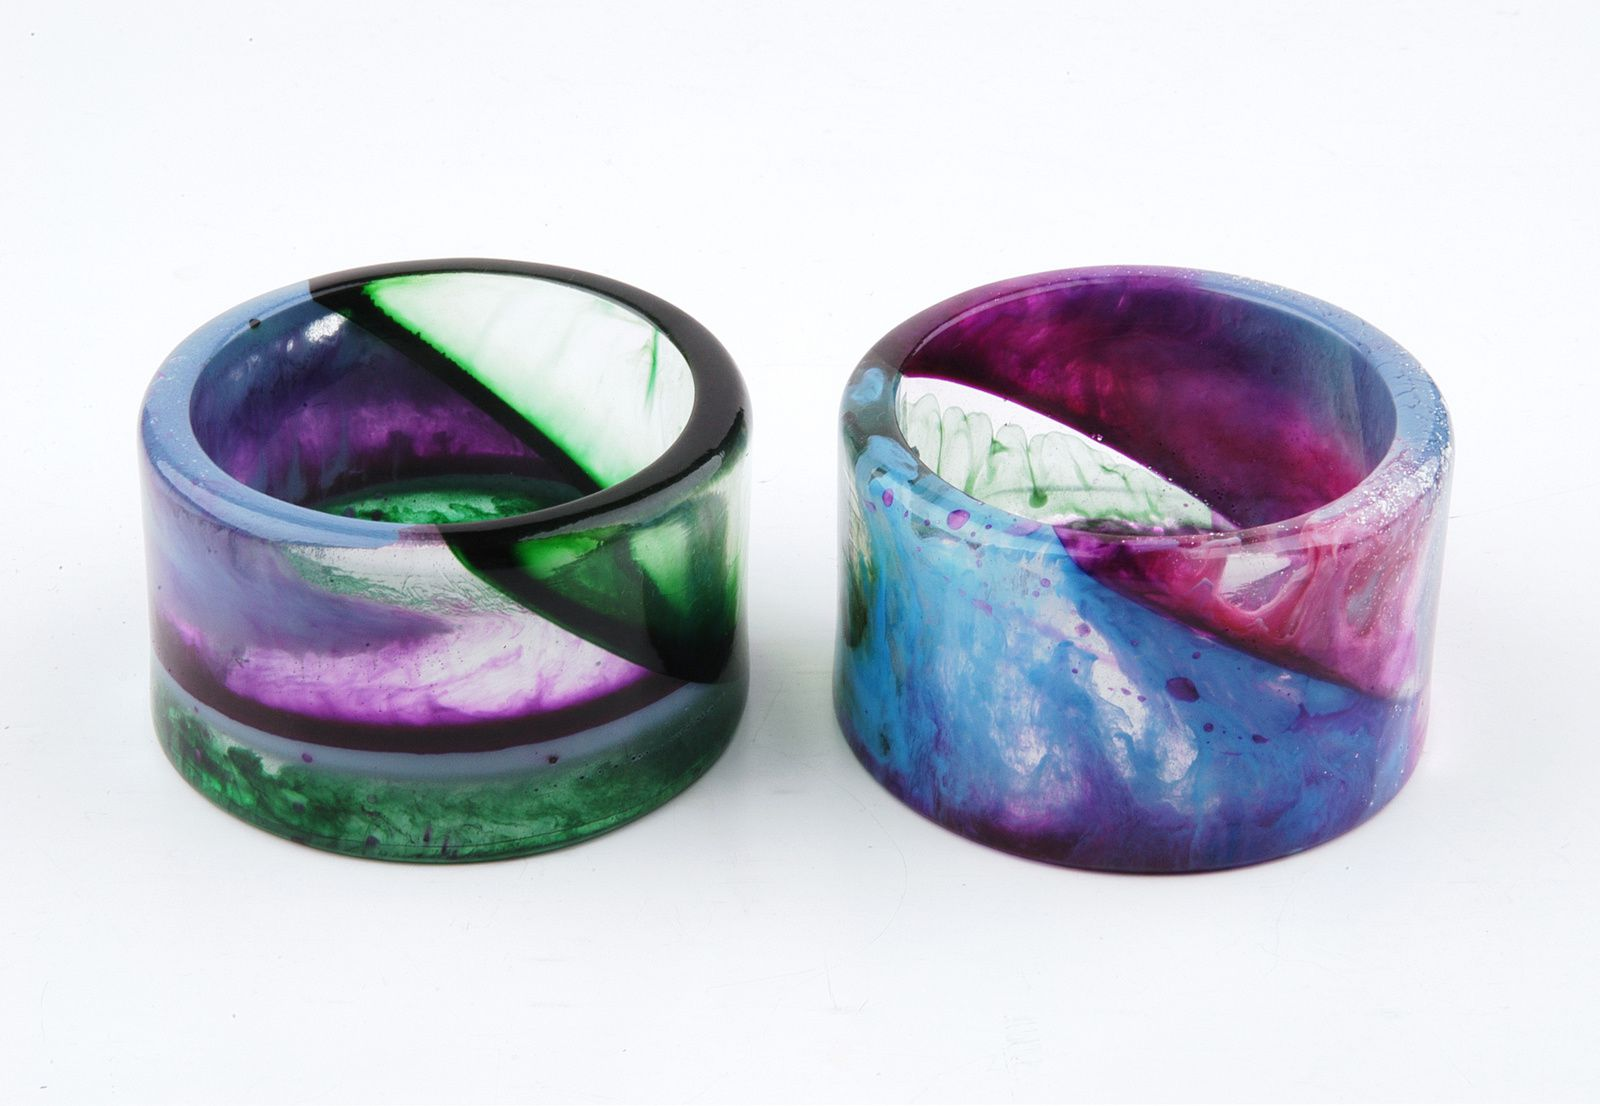 Comparison of the resin bangles: left bangle no. 1, on the right bangle no. 2